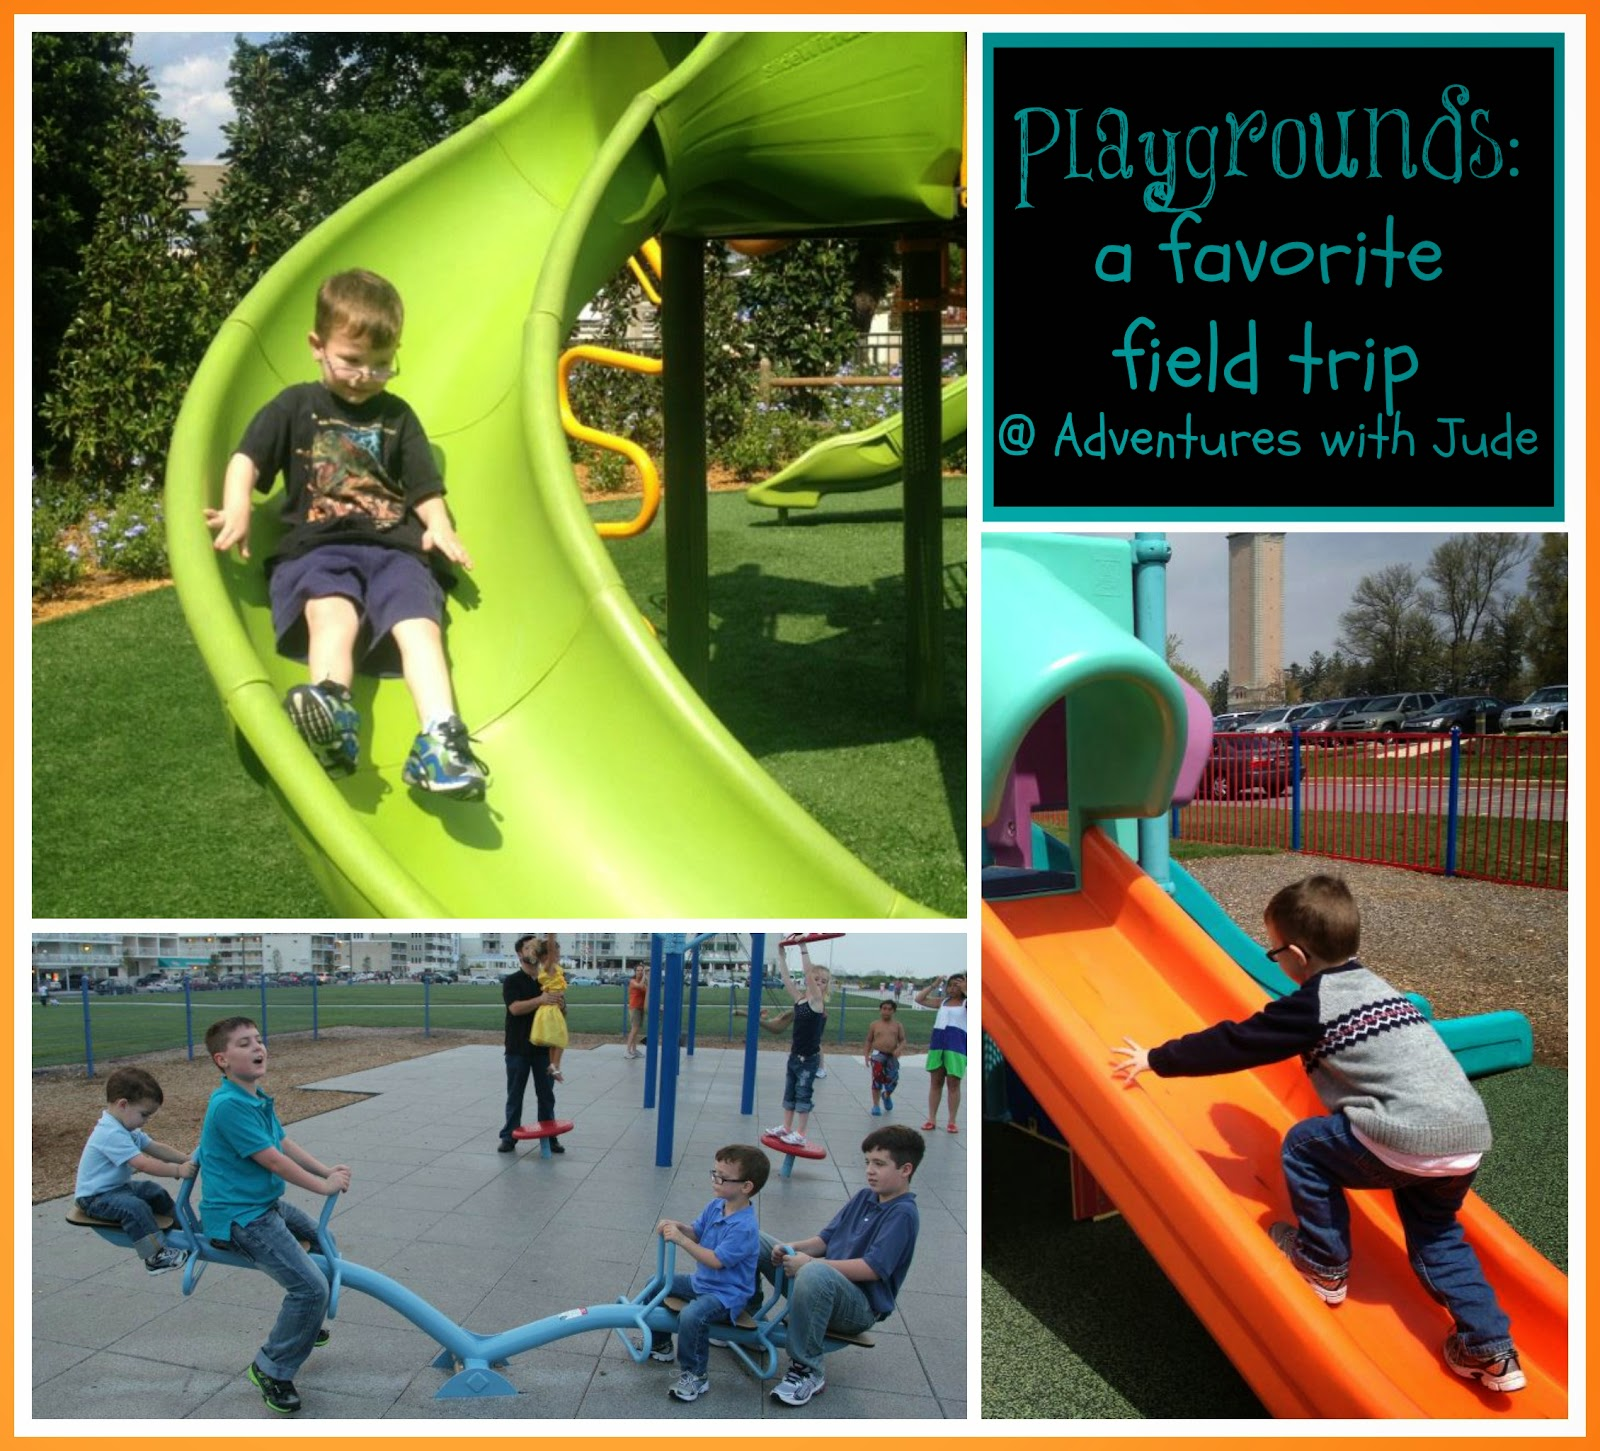 Playgrounds - A Favorite Field Trip #abcblogging